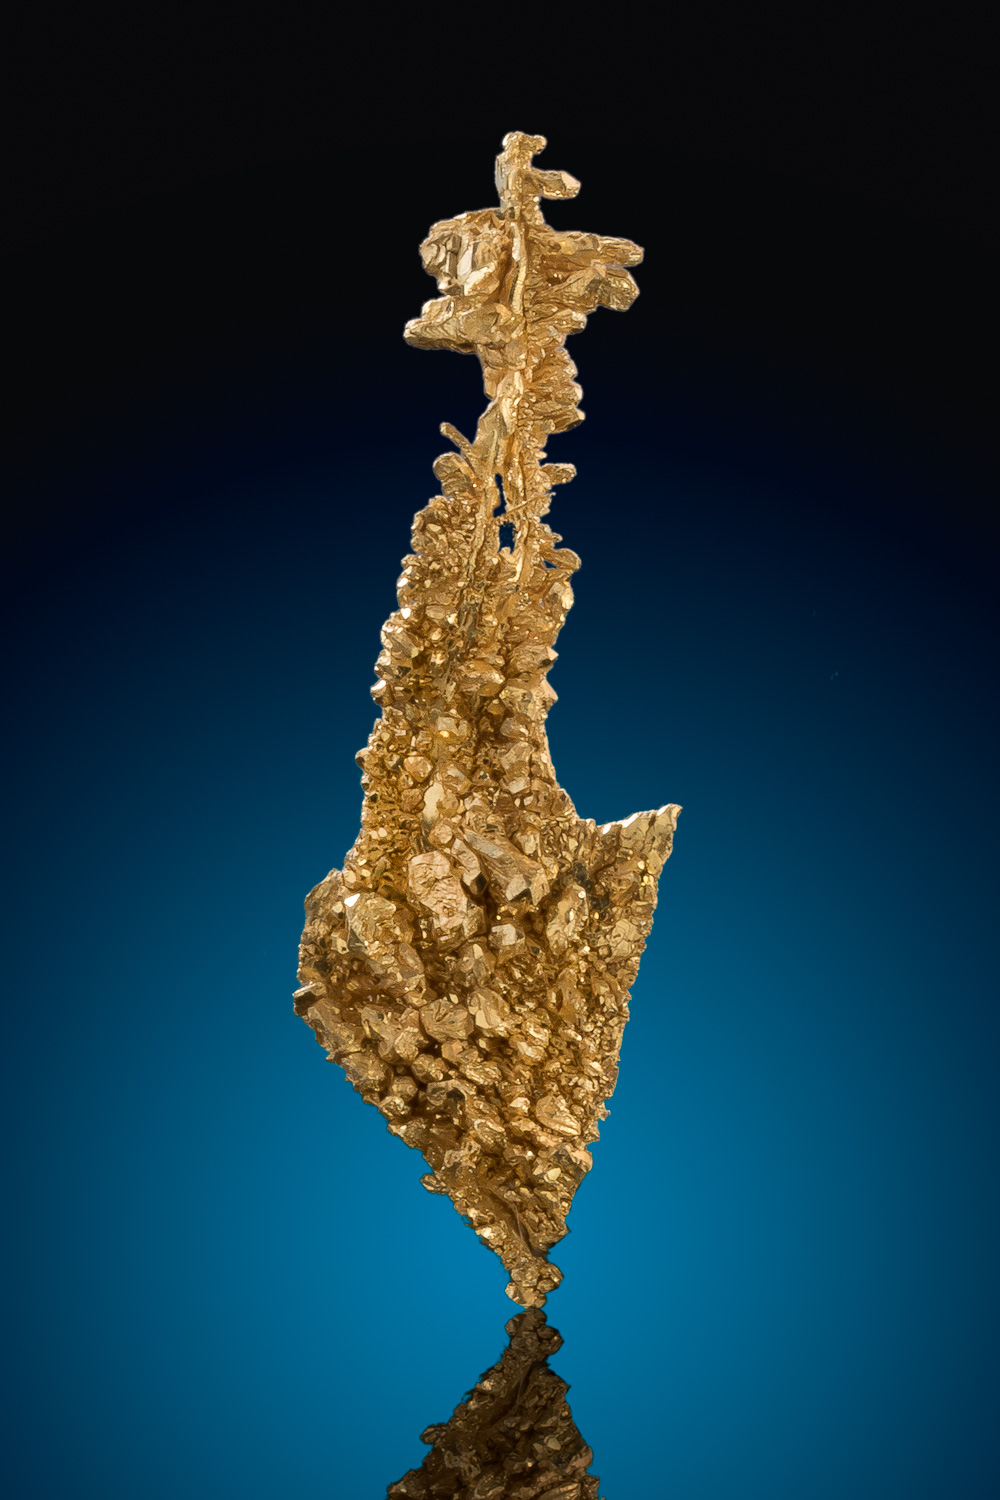 Long and Pointed Gold Crystal - Round Mountain, Nevada